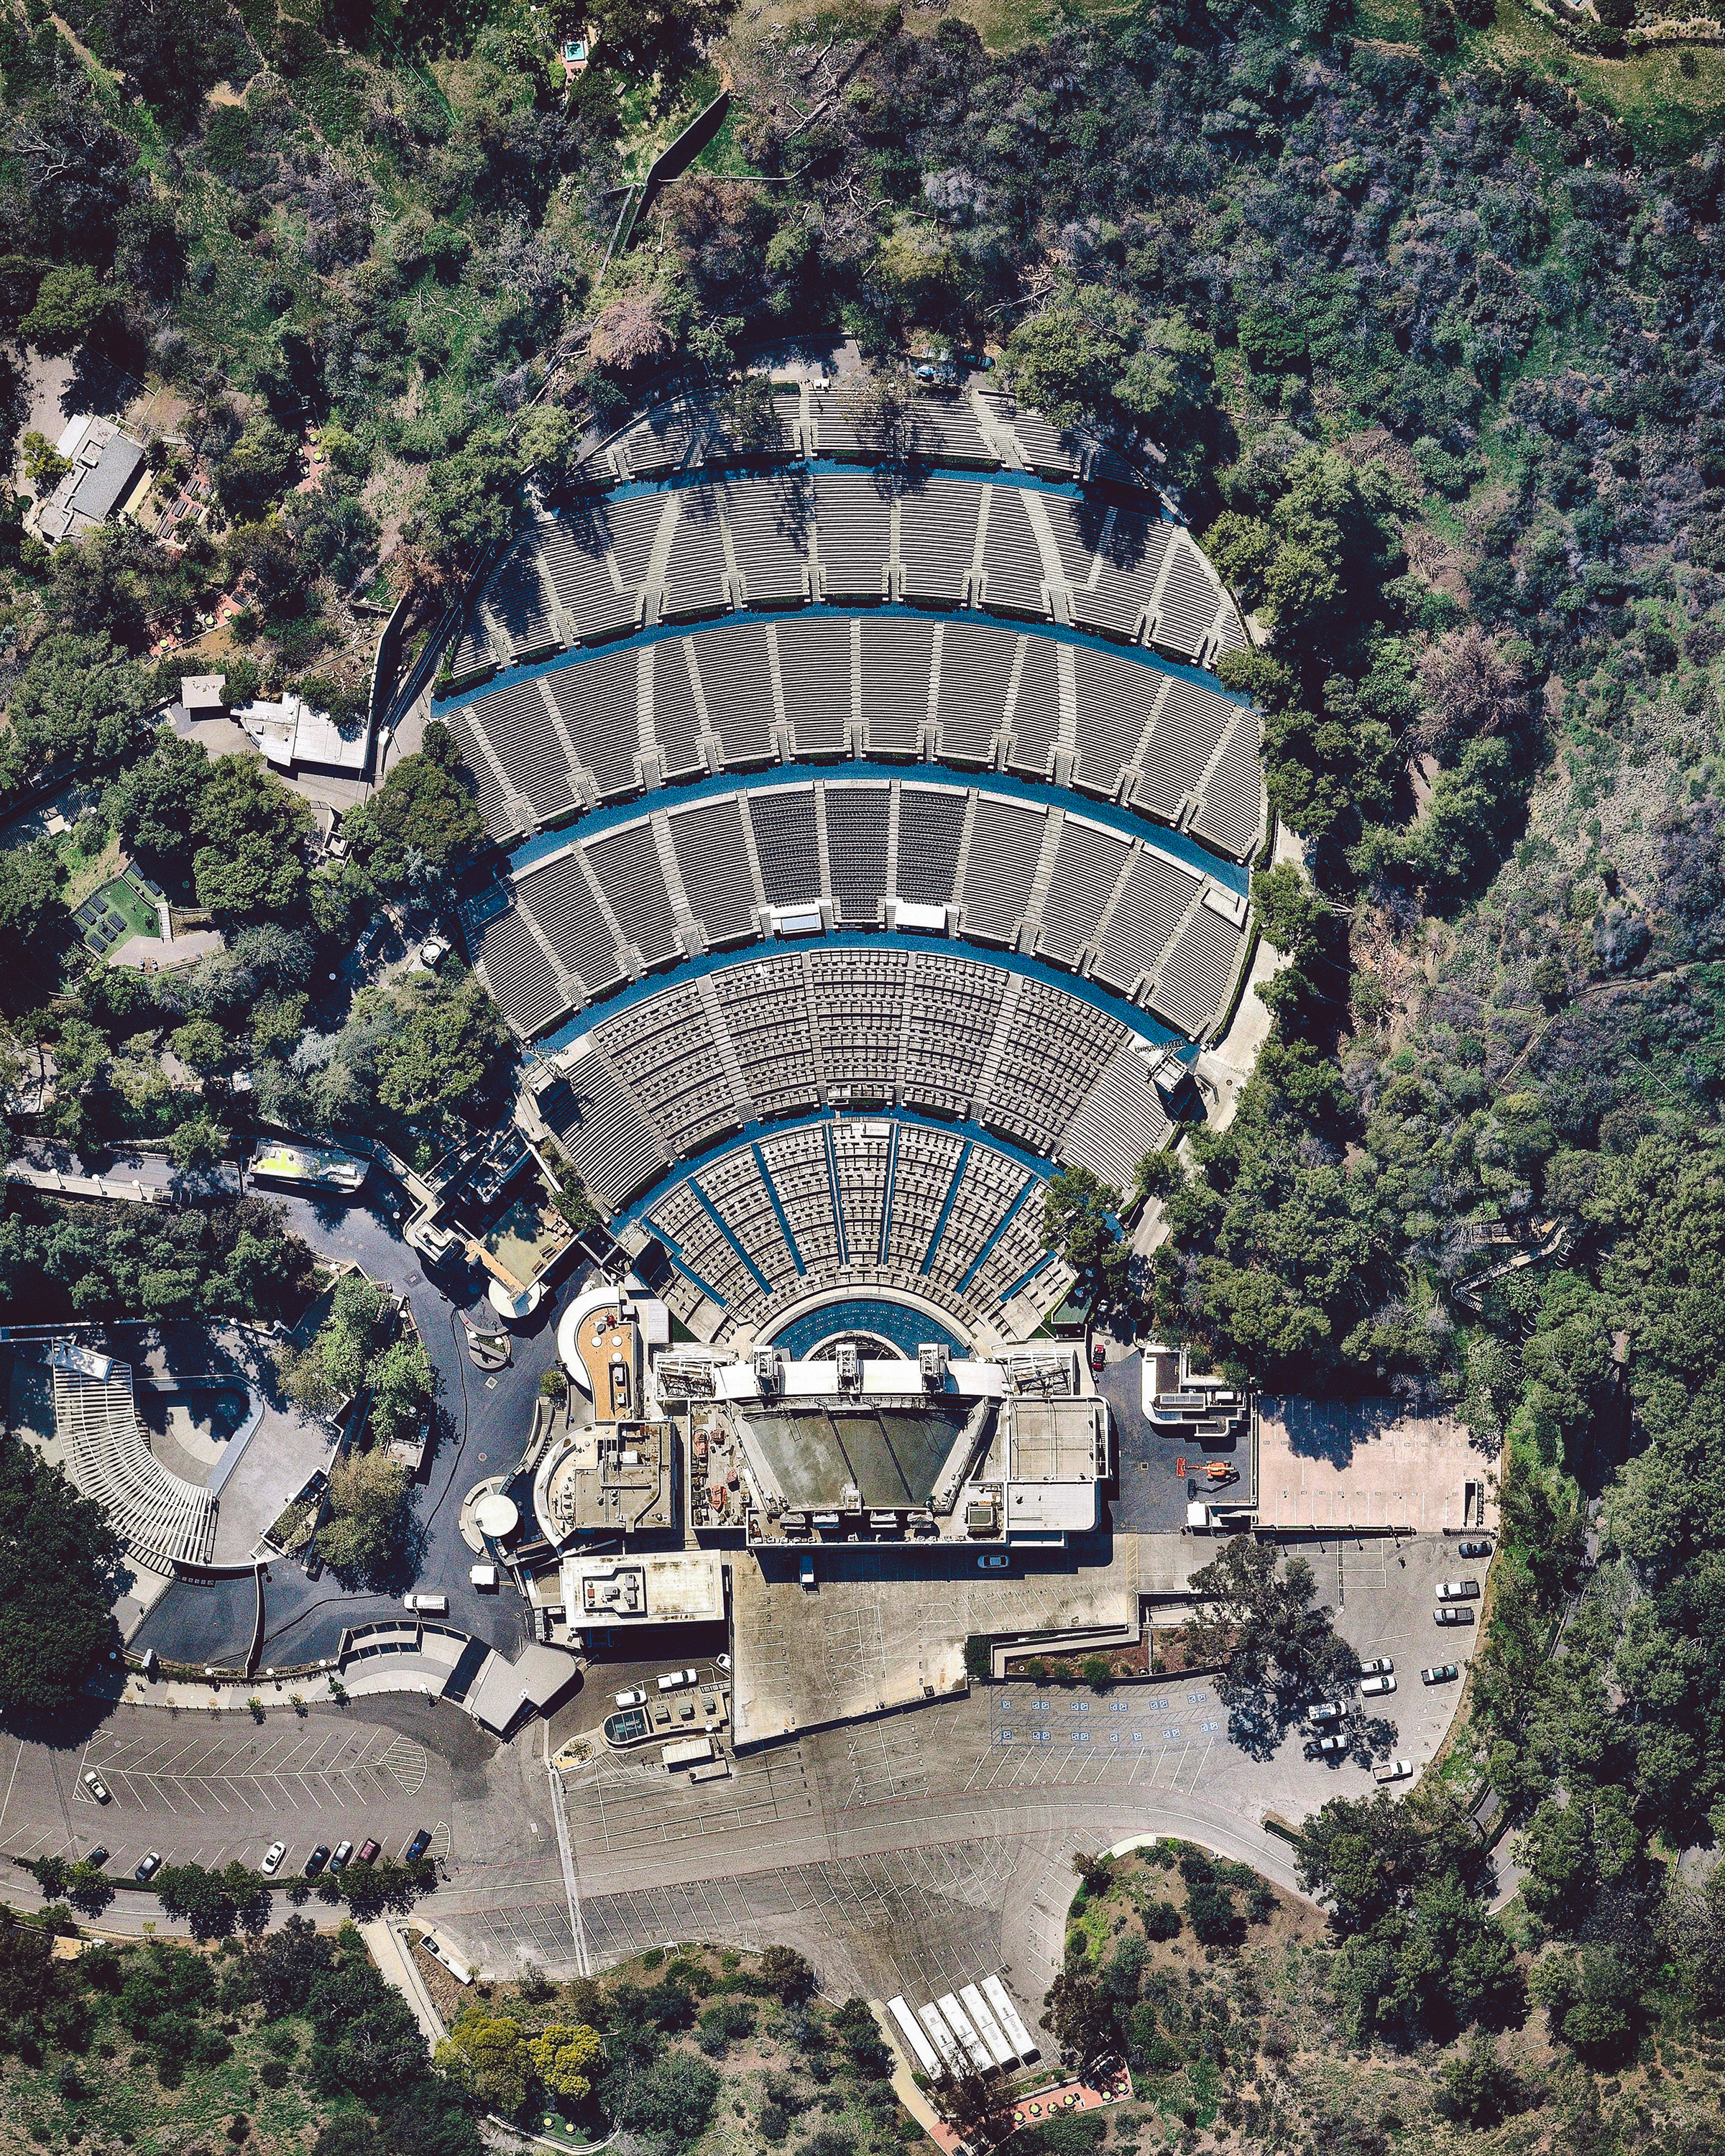 """The Hollywood Bowl is an amphitheater in the Hollywood Hills neighborhood of Los Angeles, California. The """"bowl"""" refers to the shape of the concave hillside that the theater is carved into. It was named one of the 10 best live music venues in America by Rolling Stone Magazine in 2018 and has hosted countless music legends, including Nat """"King"""" Cole, The Beatles, Elton John, Cher, and Prince.  34.112778°, -118.338889°  Source imagery: Nearmap"""